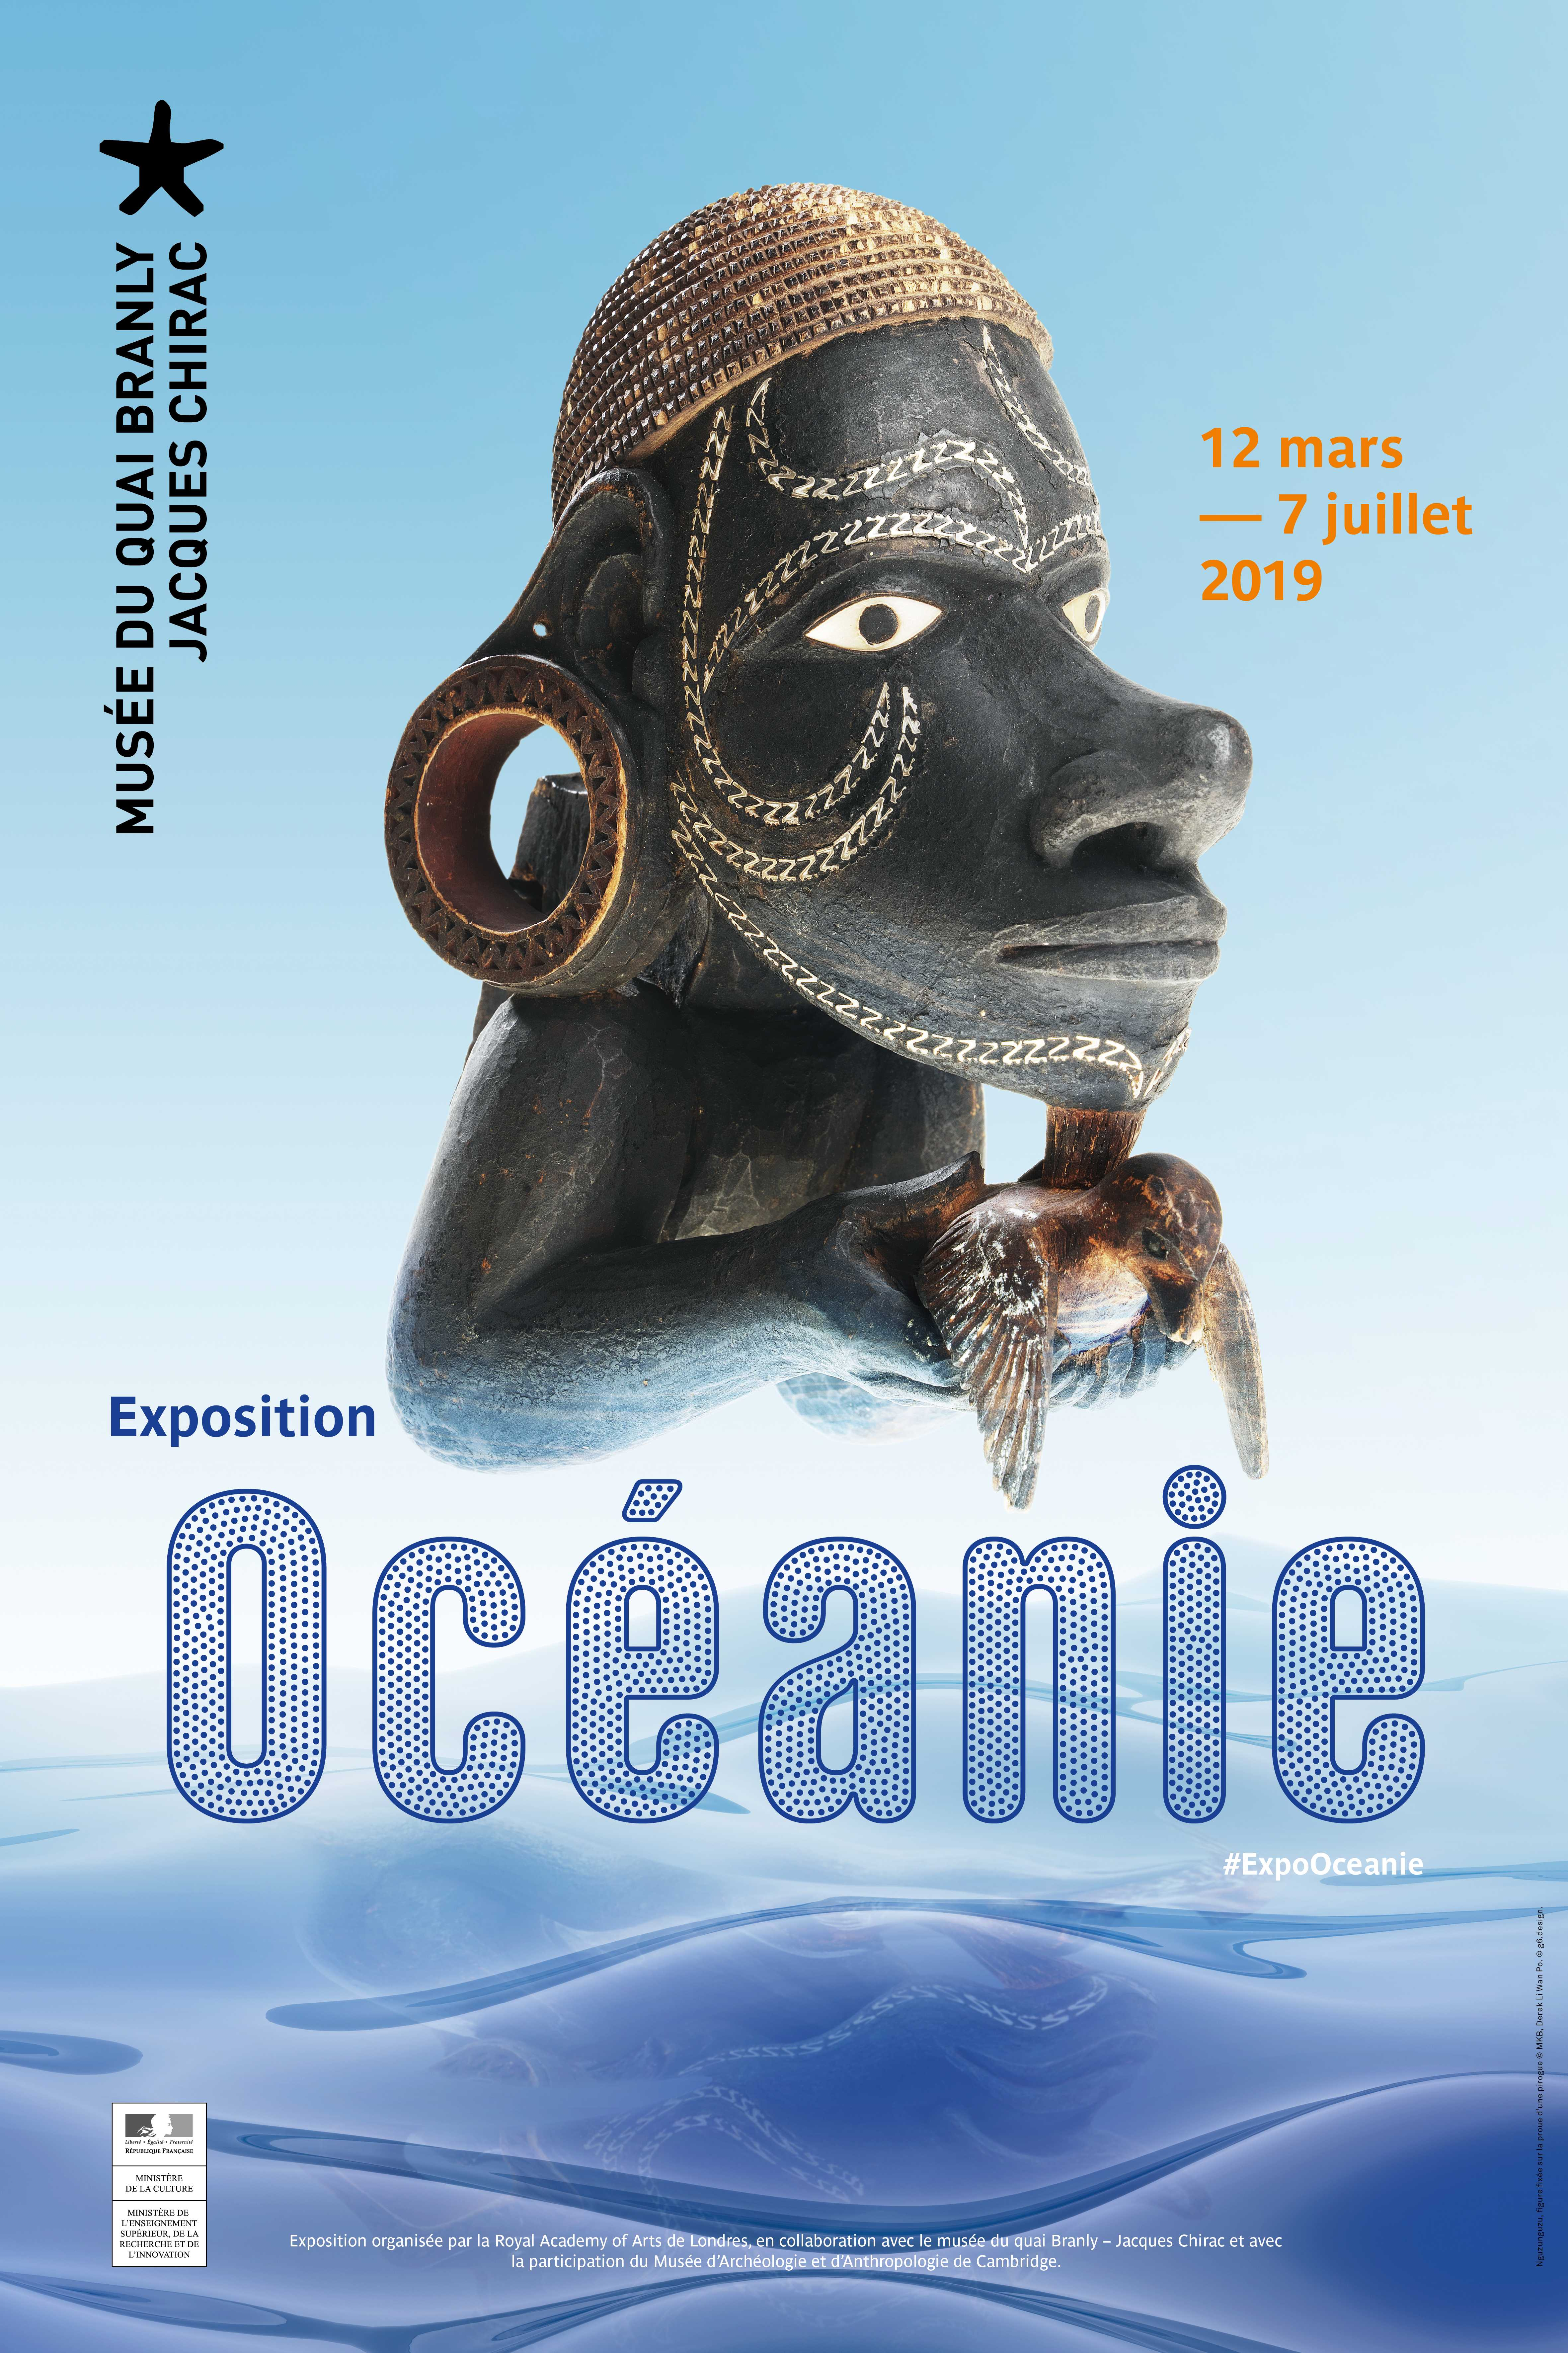 Océanie, Exhibition, Quai Branly, Paris: 12 March 2019-07 July 2019